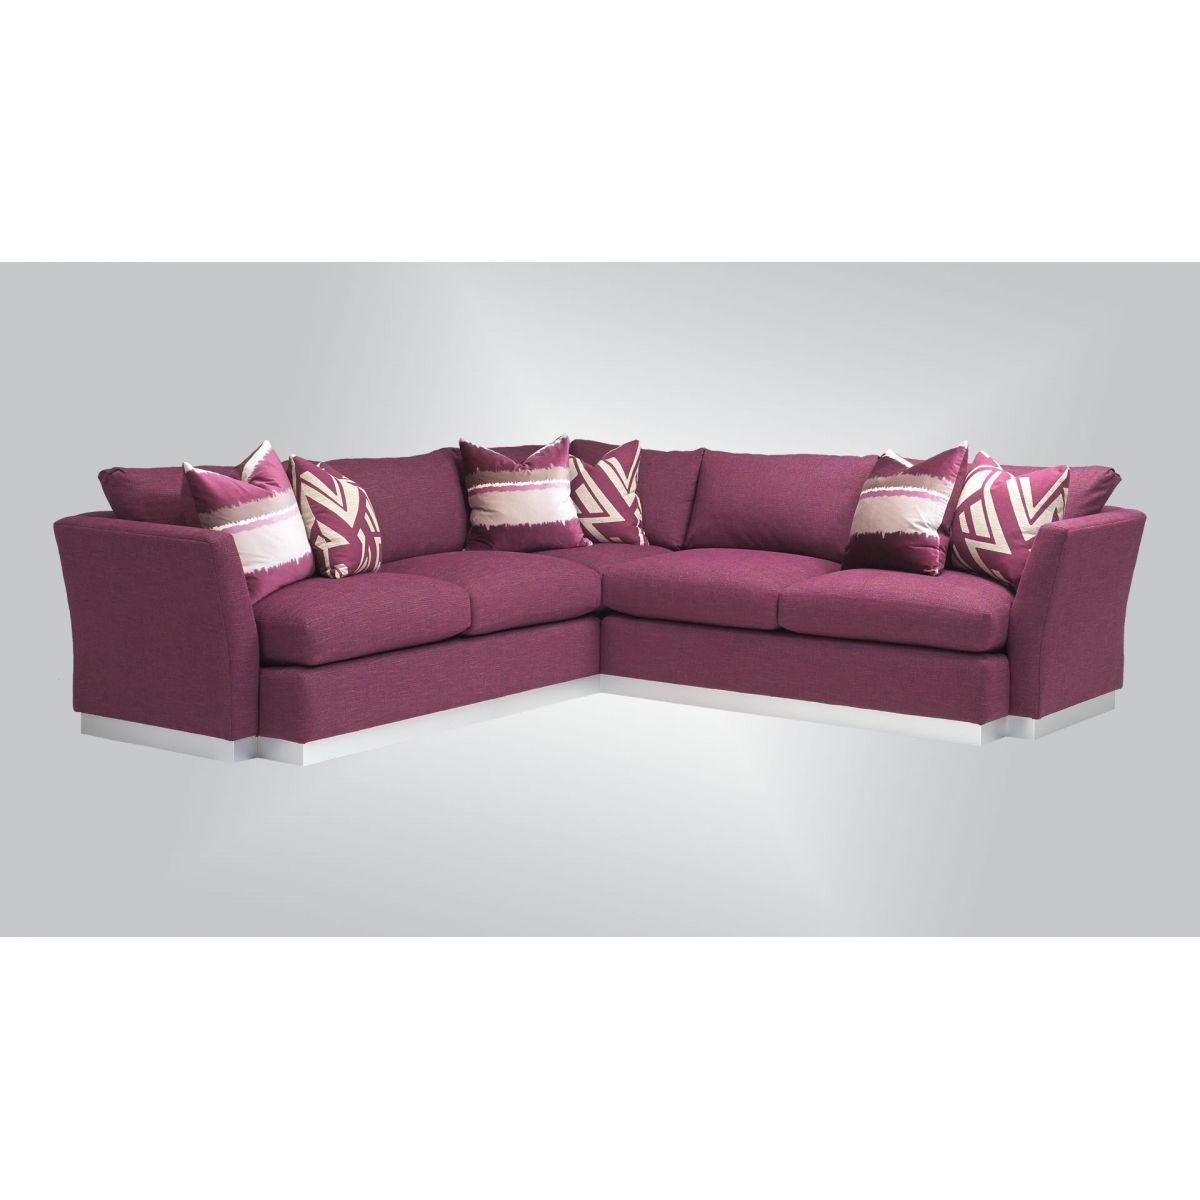 Sectional | Throughout Burton James Sectional Sofas (Image 12 of 20)